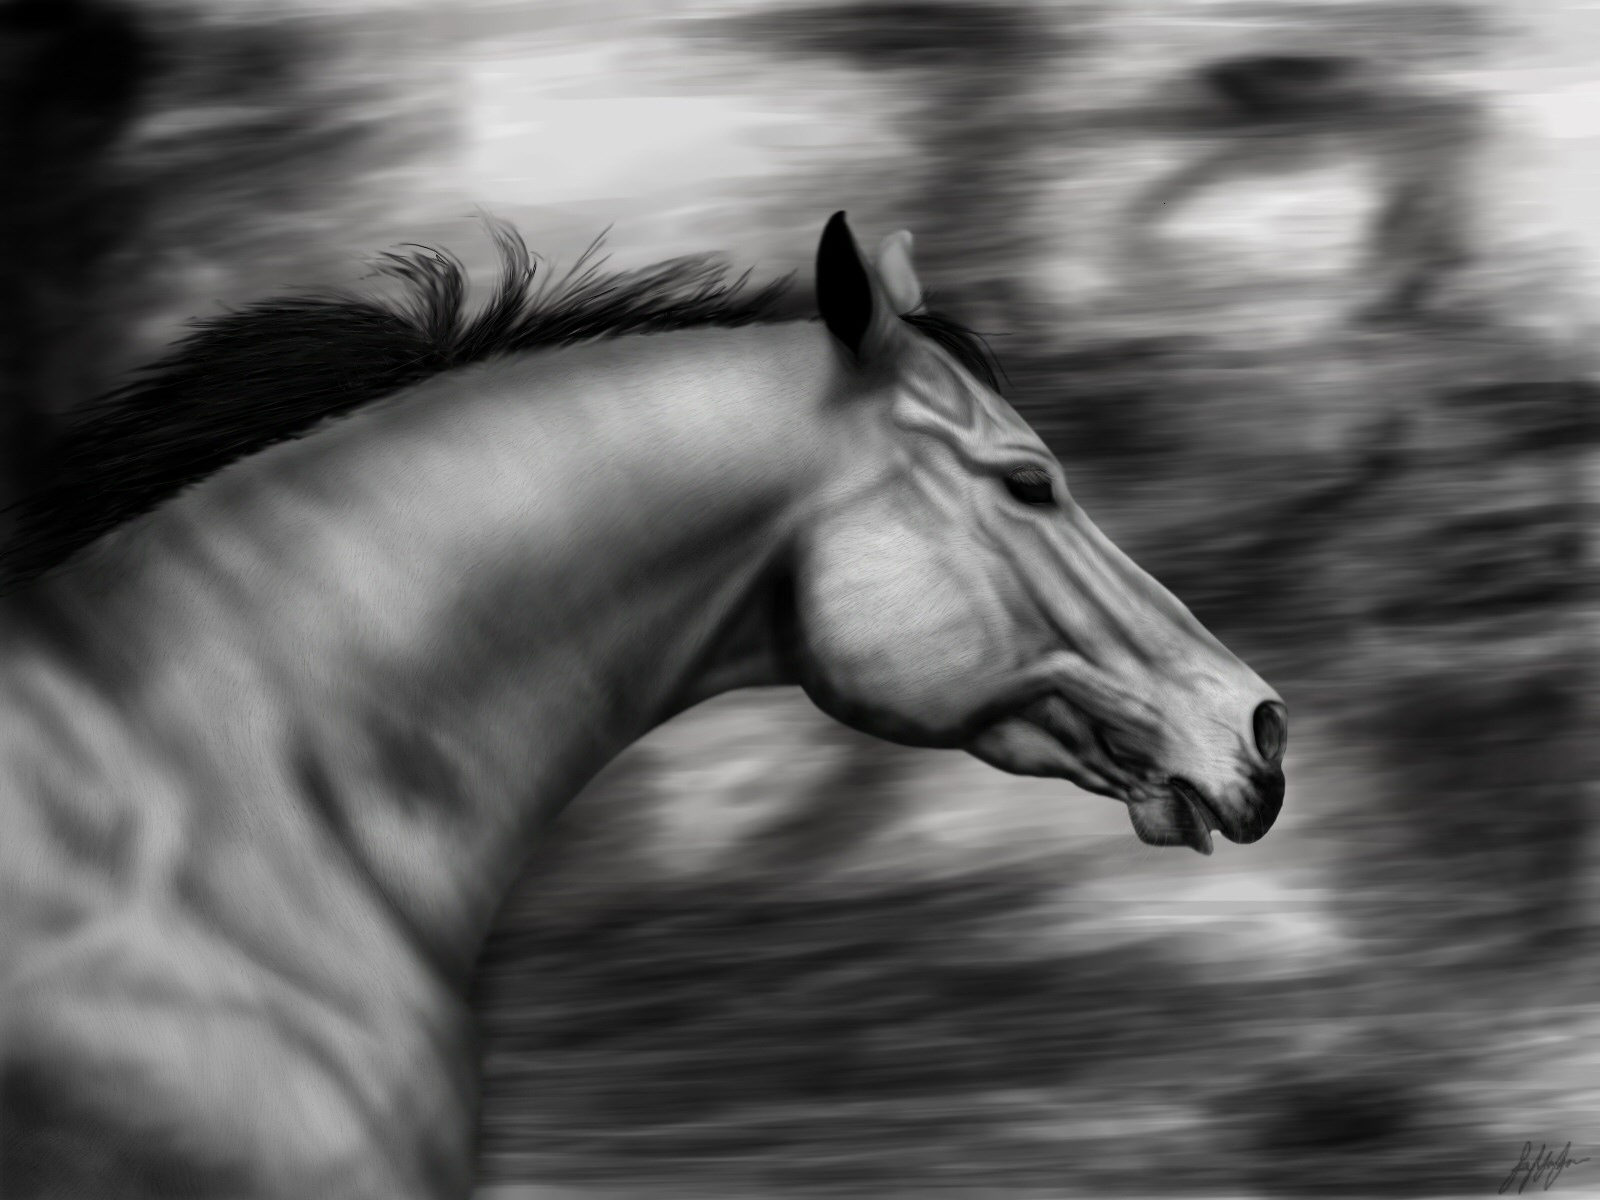 wallpapers-room_com___bw_horse_by_kyliegirl_1600x1200